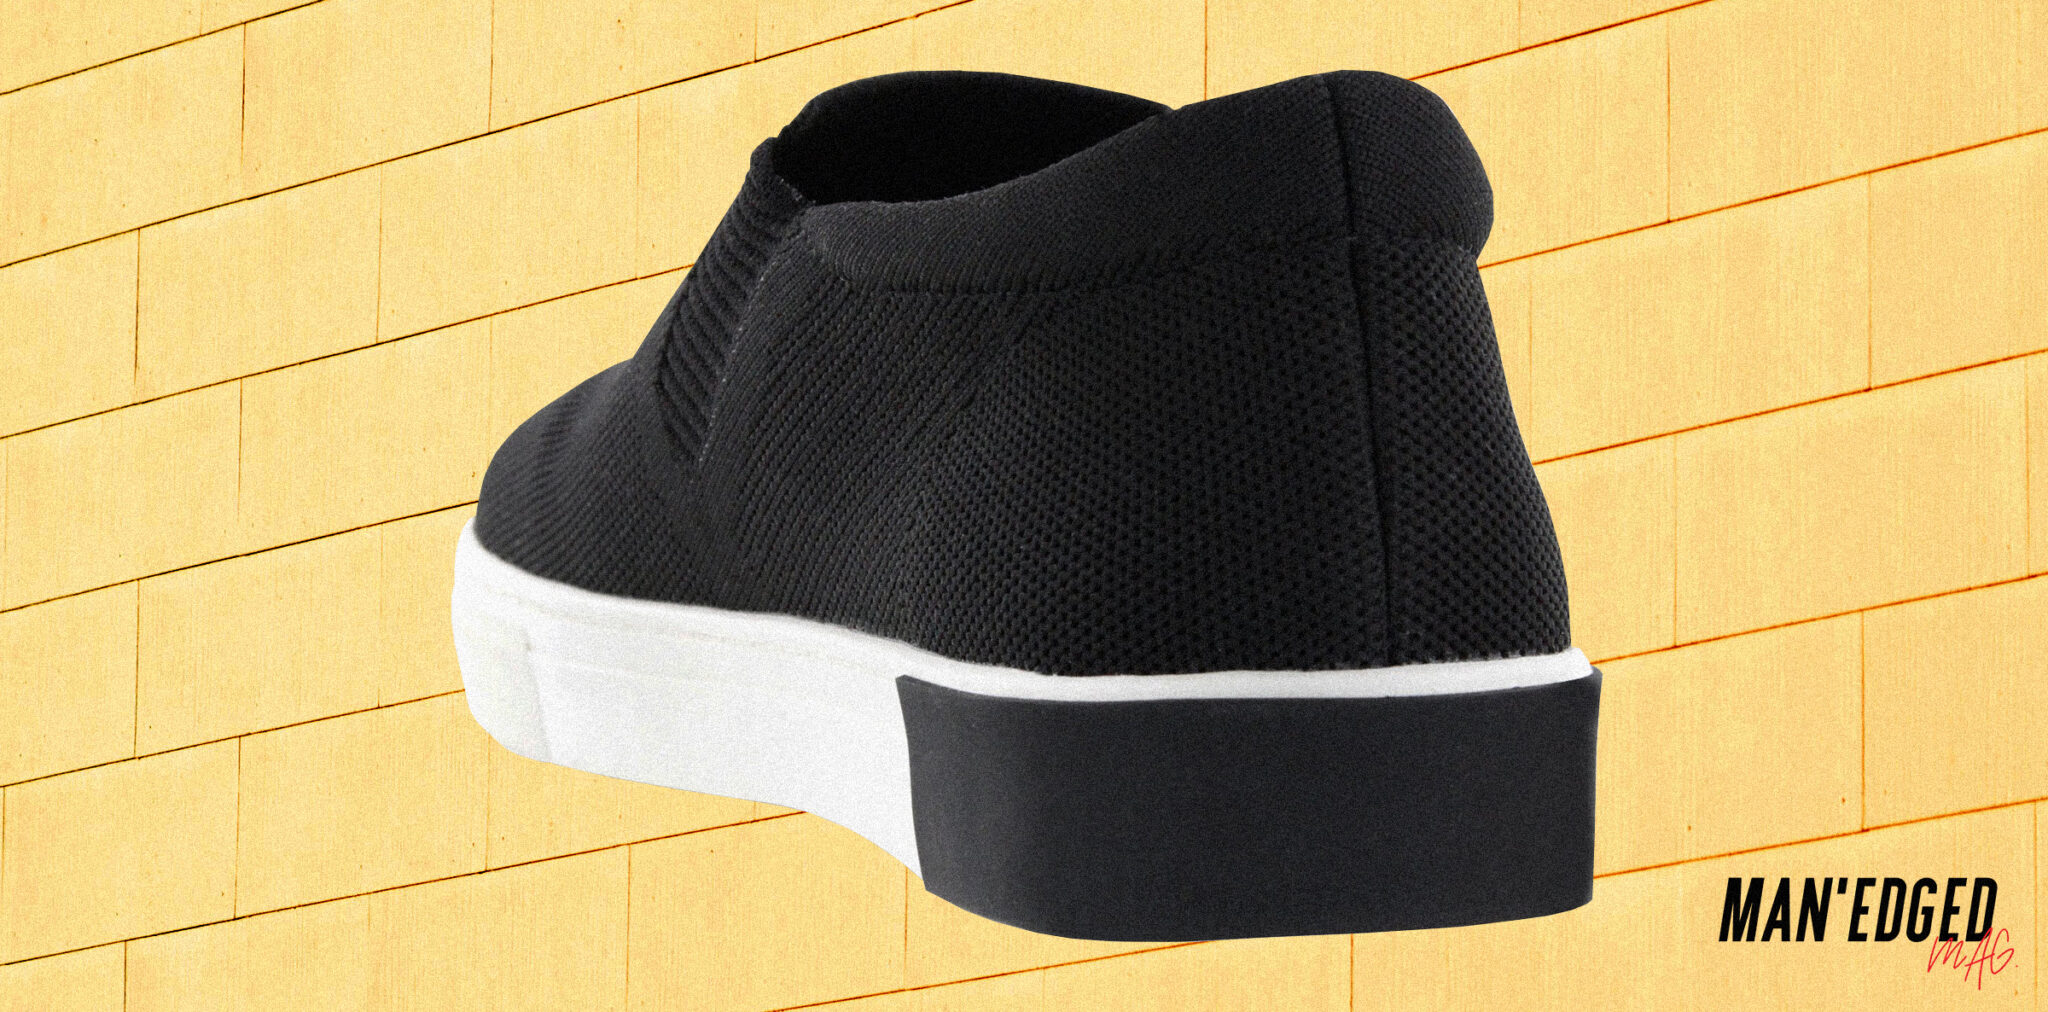 low profile men's slip-on sneaker